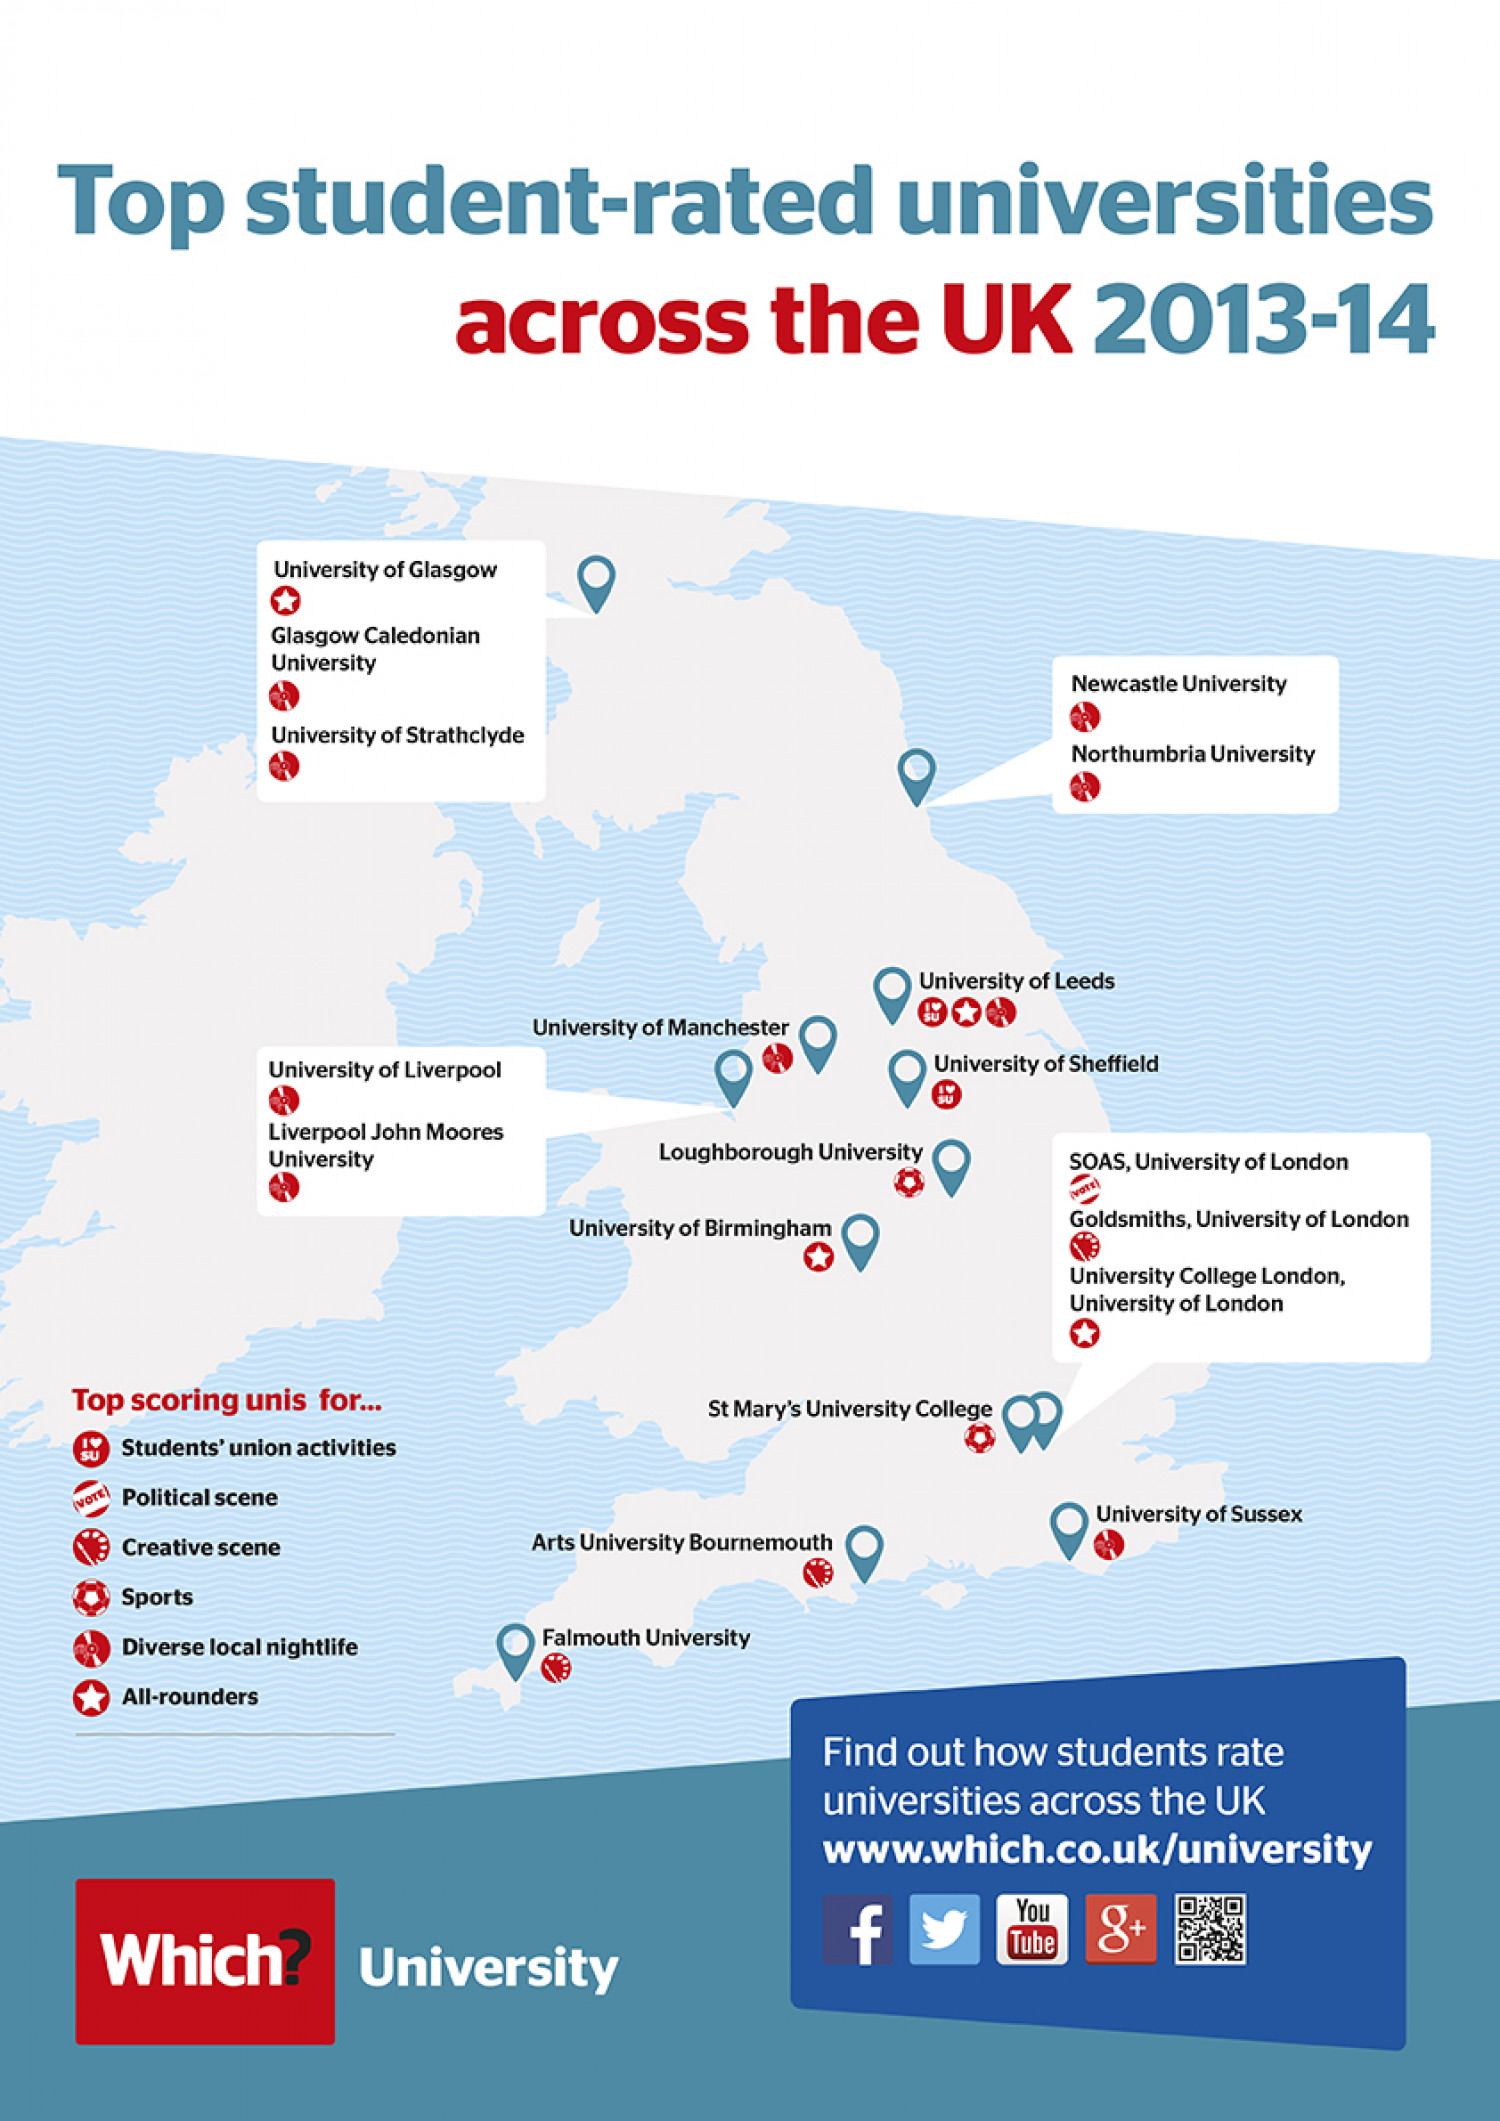 Top student-rated universities across the UK Infographic